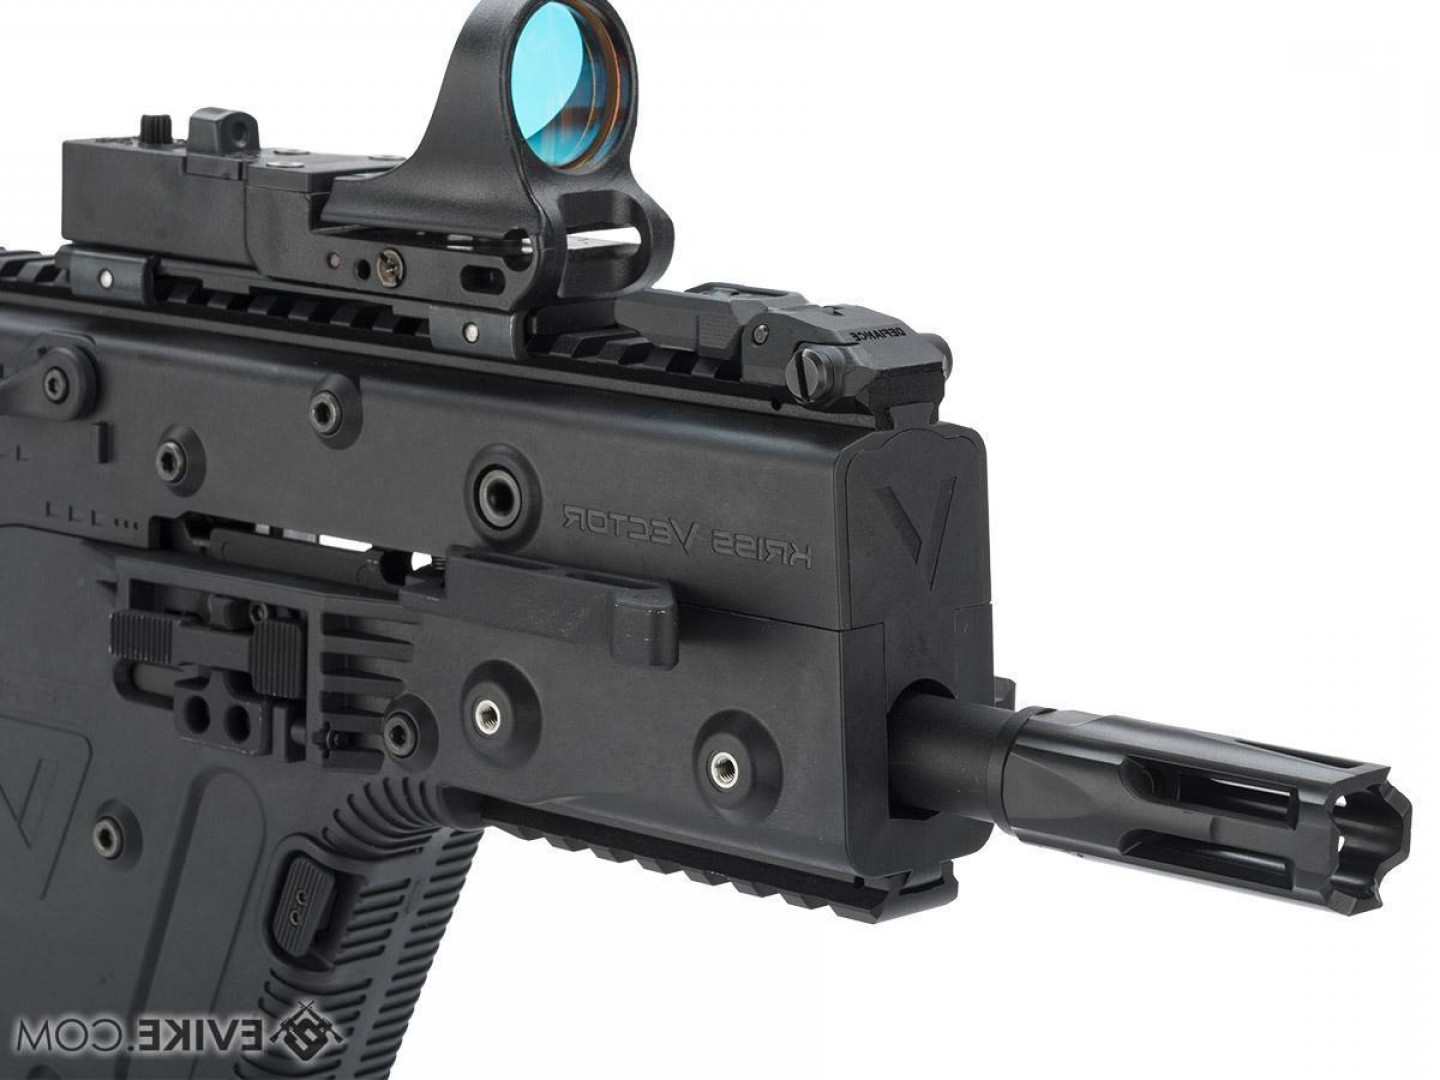 Custom Kriss Vector Airsoft Firing: Kriss Usa Licensed Kriss Vector Airsoft Aeg Smg Rifle By Krytac Model Black